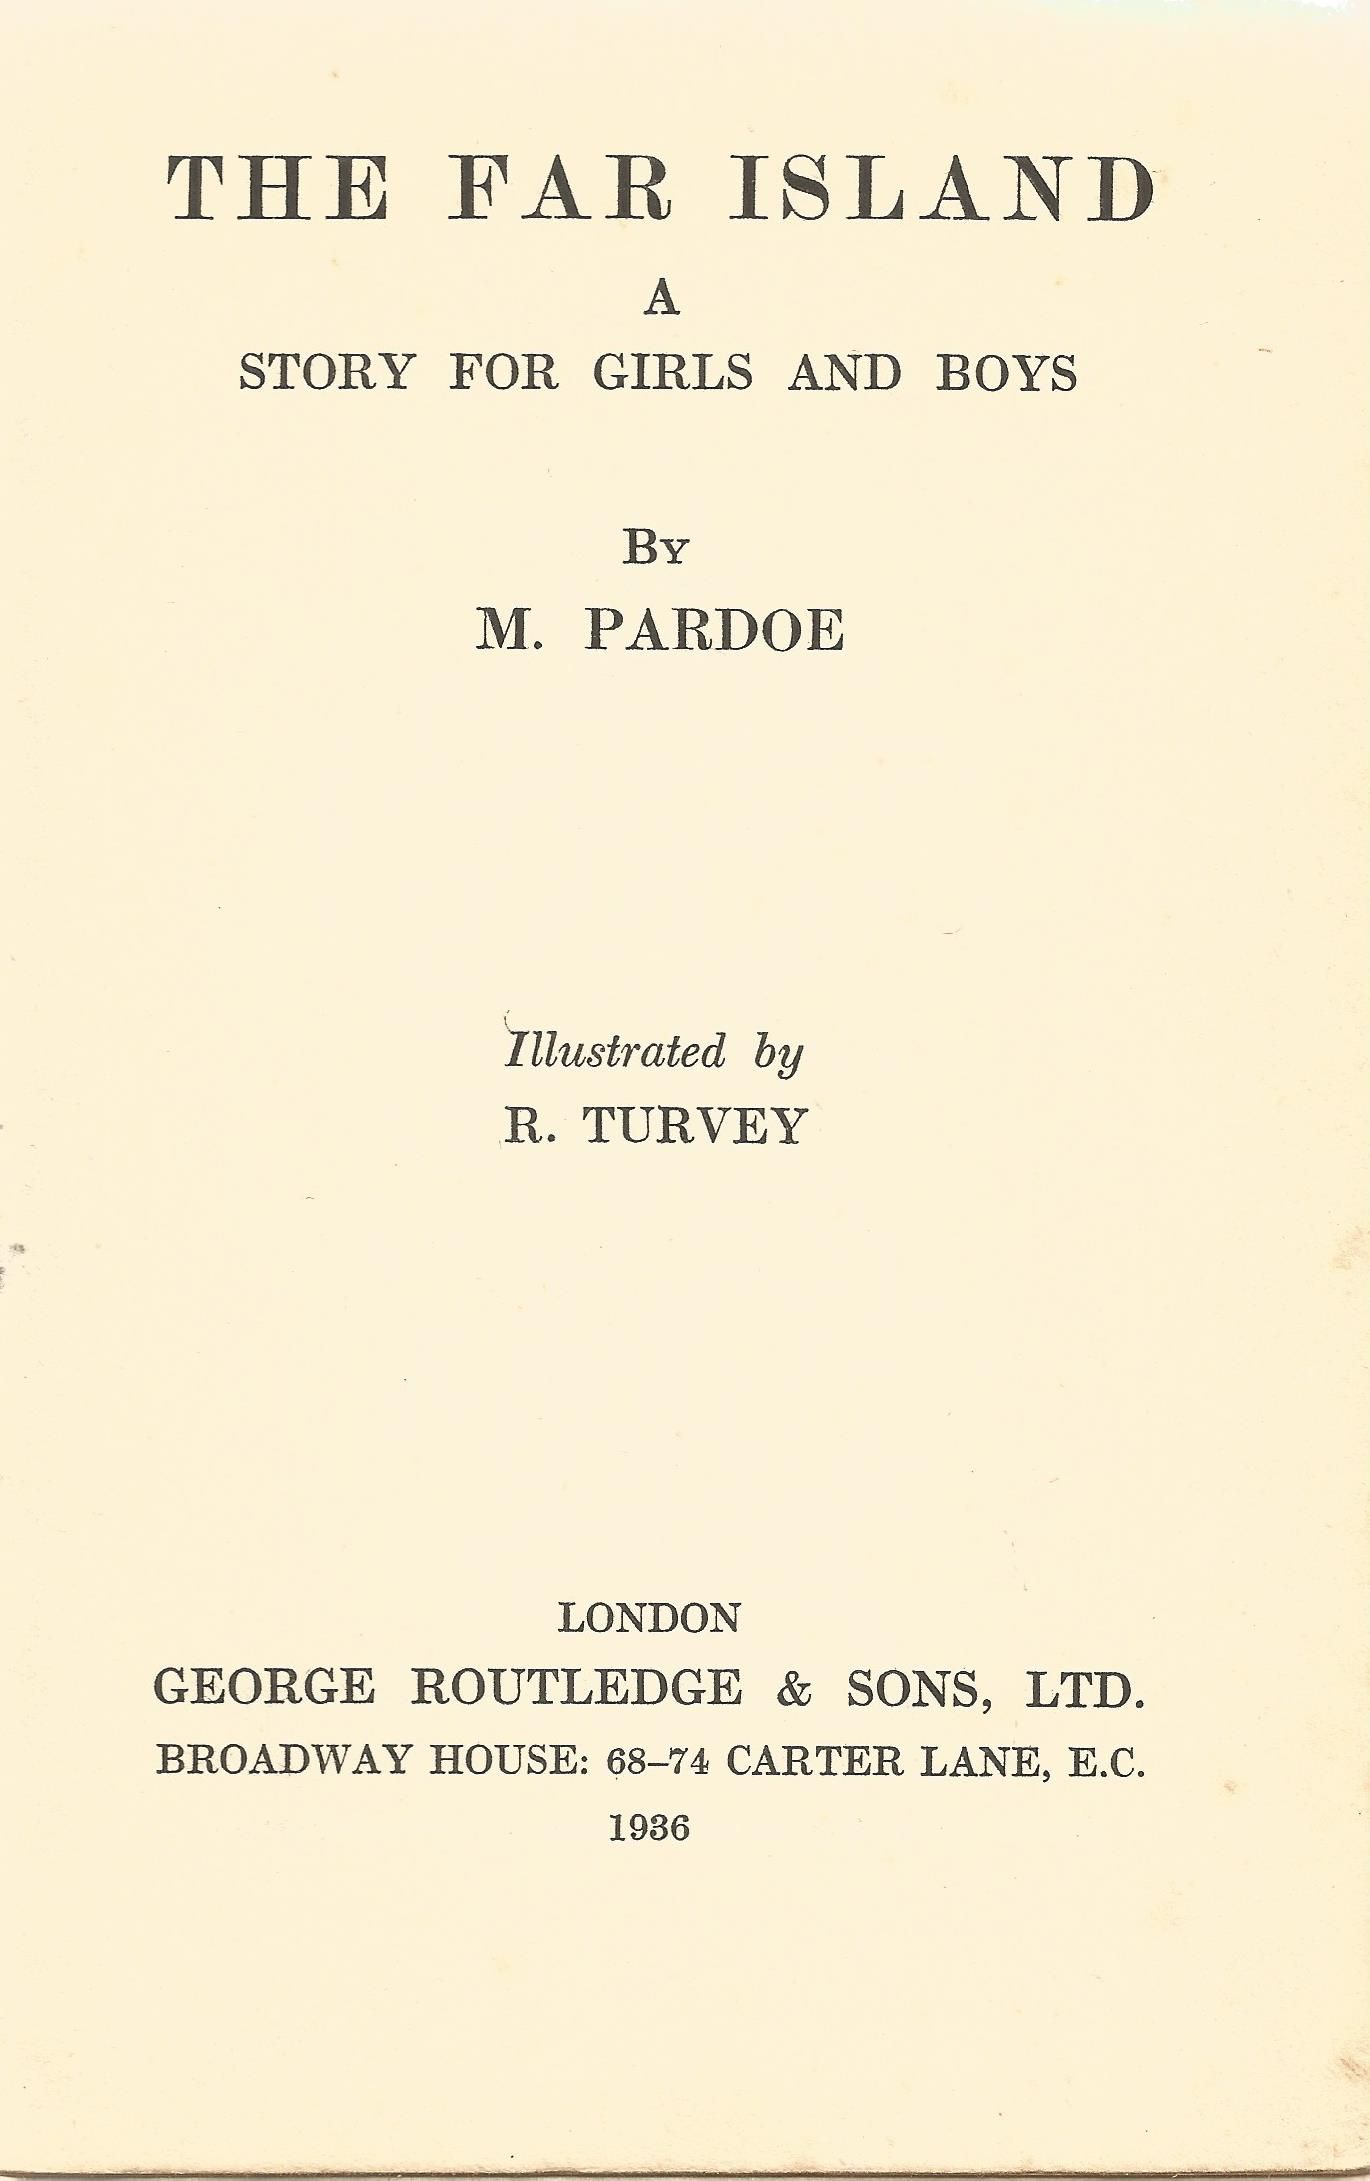 Hardback Book The Far Island A Story for Girls and Boys by M Pardoe Illustrated by R Turvey 1936 - Image 2 of 4